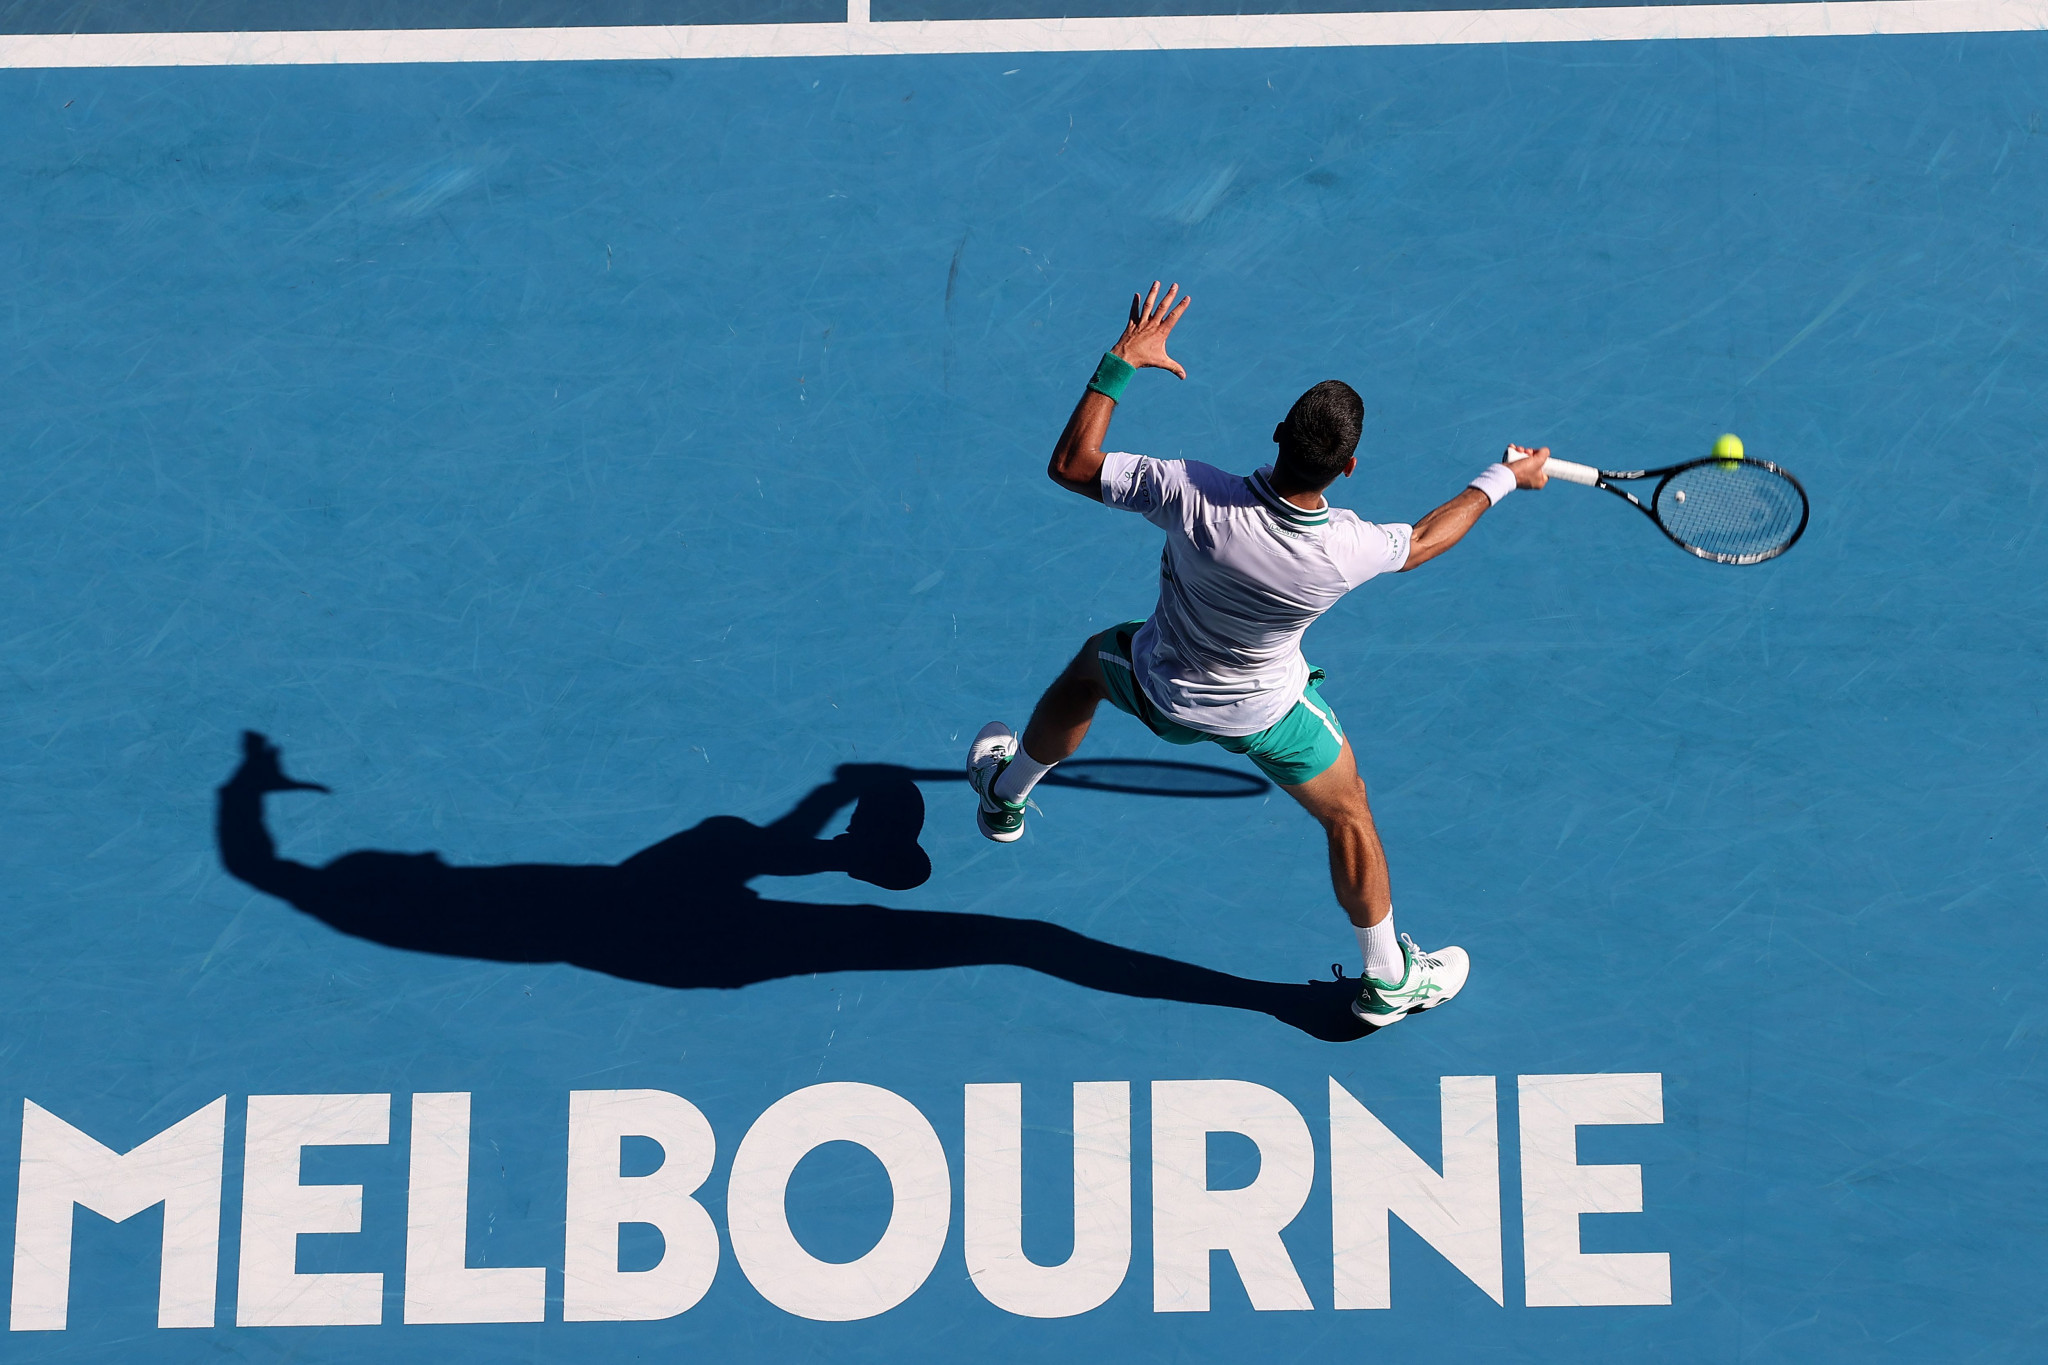 The Australian Open is one of the four major tennis tournaments that make up the Grand Slam Board ©Getty Images